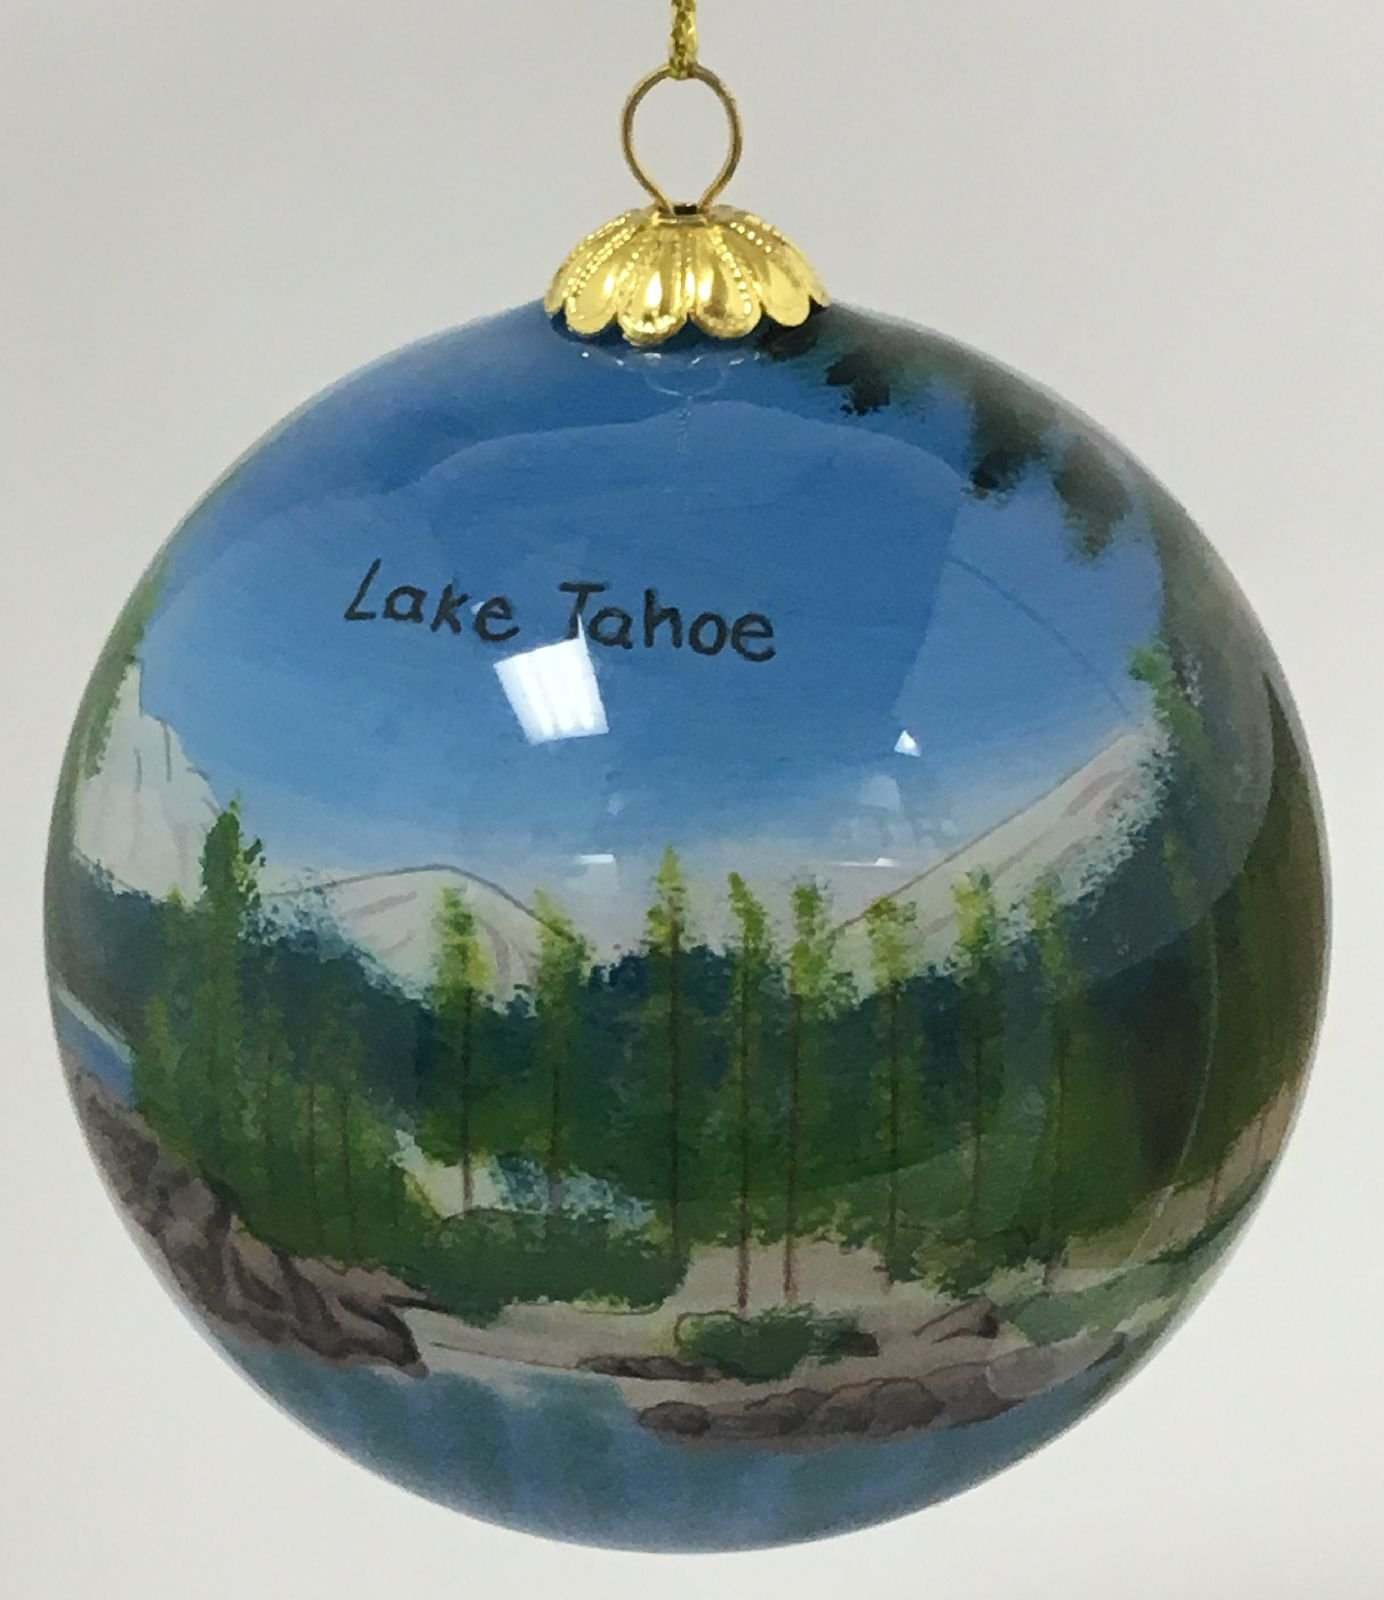 Home and Holiday Shops Lake Tahoe Nevada Scenic Reverse Painted Glass Ball Christmas Tree Ornament New